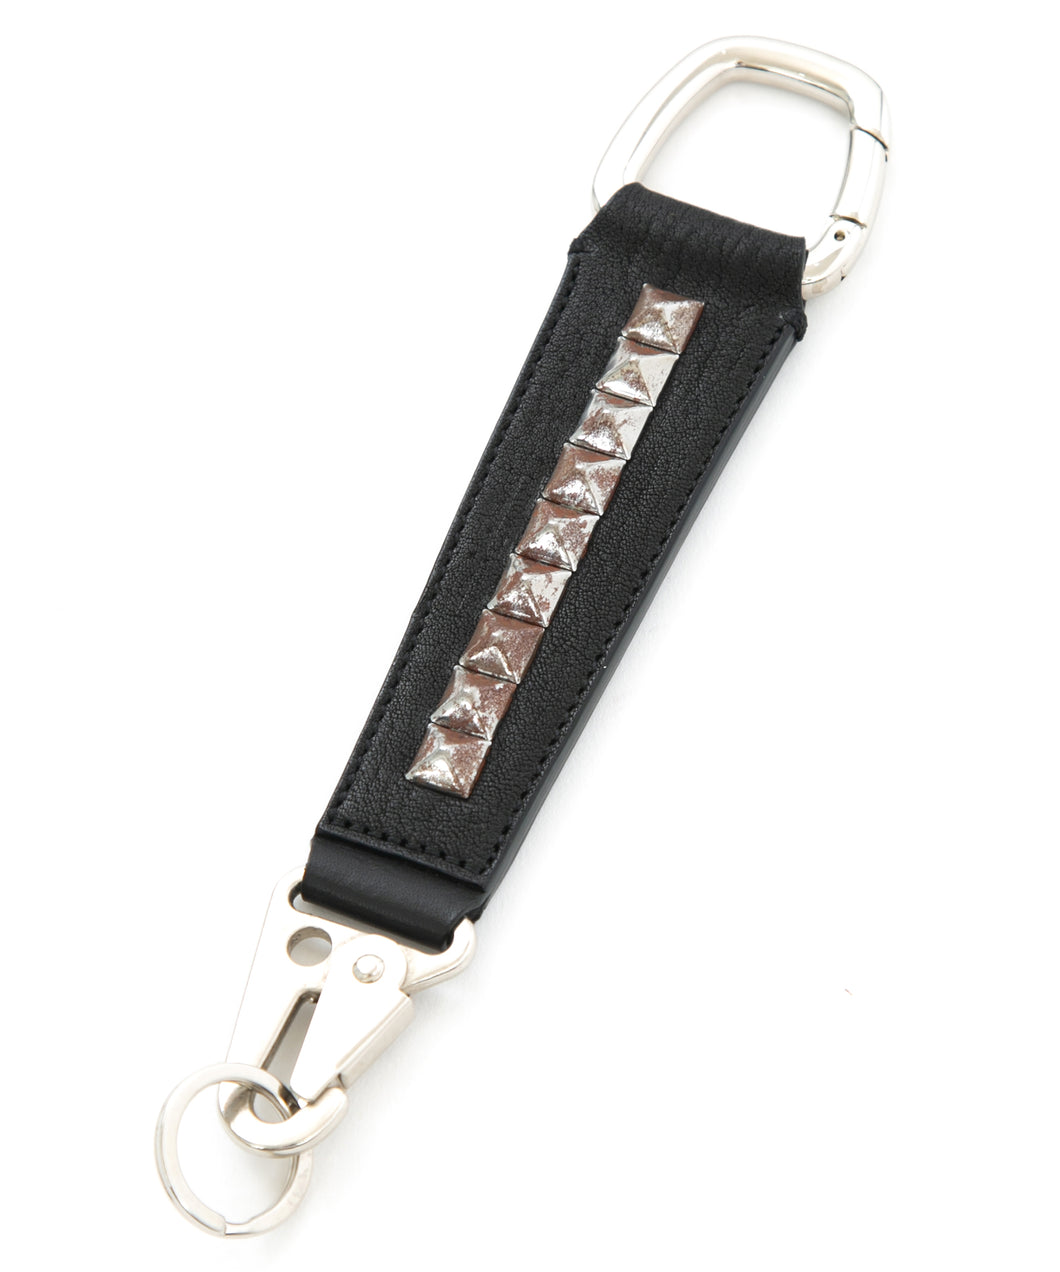 [Session] Pit Vegetable Full tanned Shrank Horse hide studs key chain / black